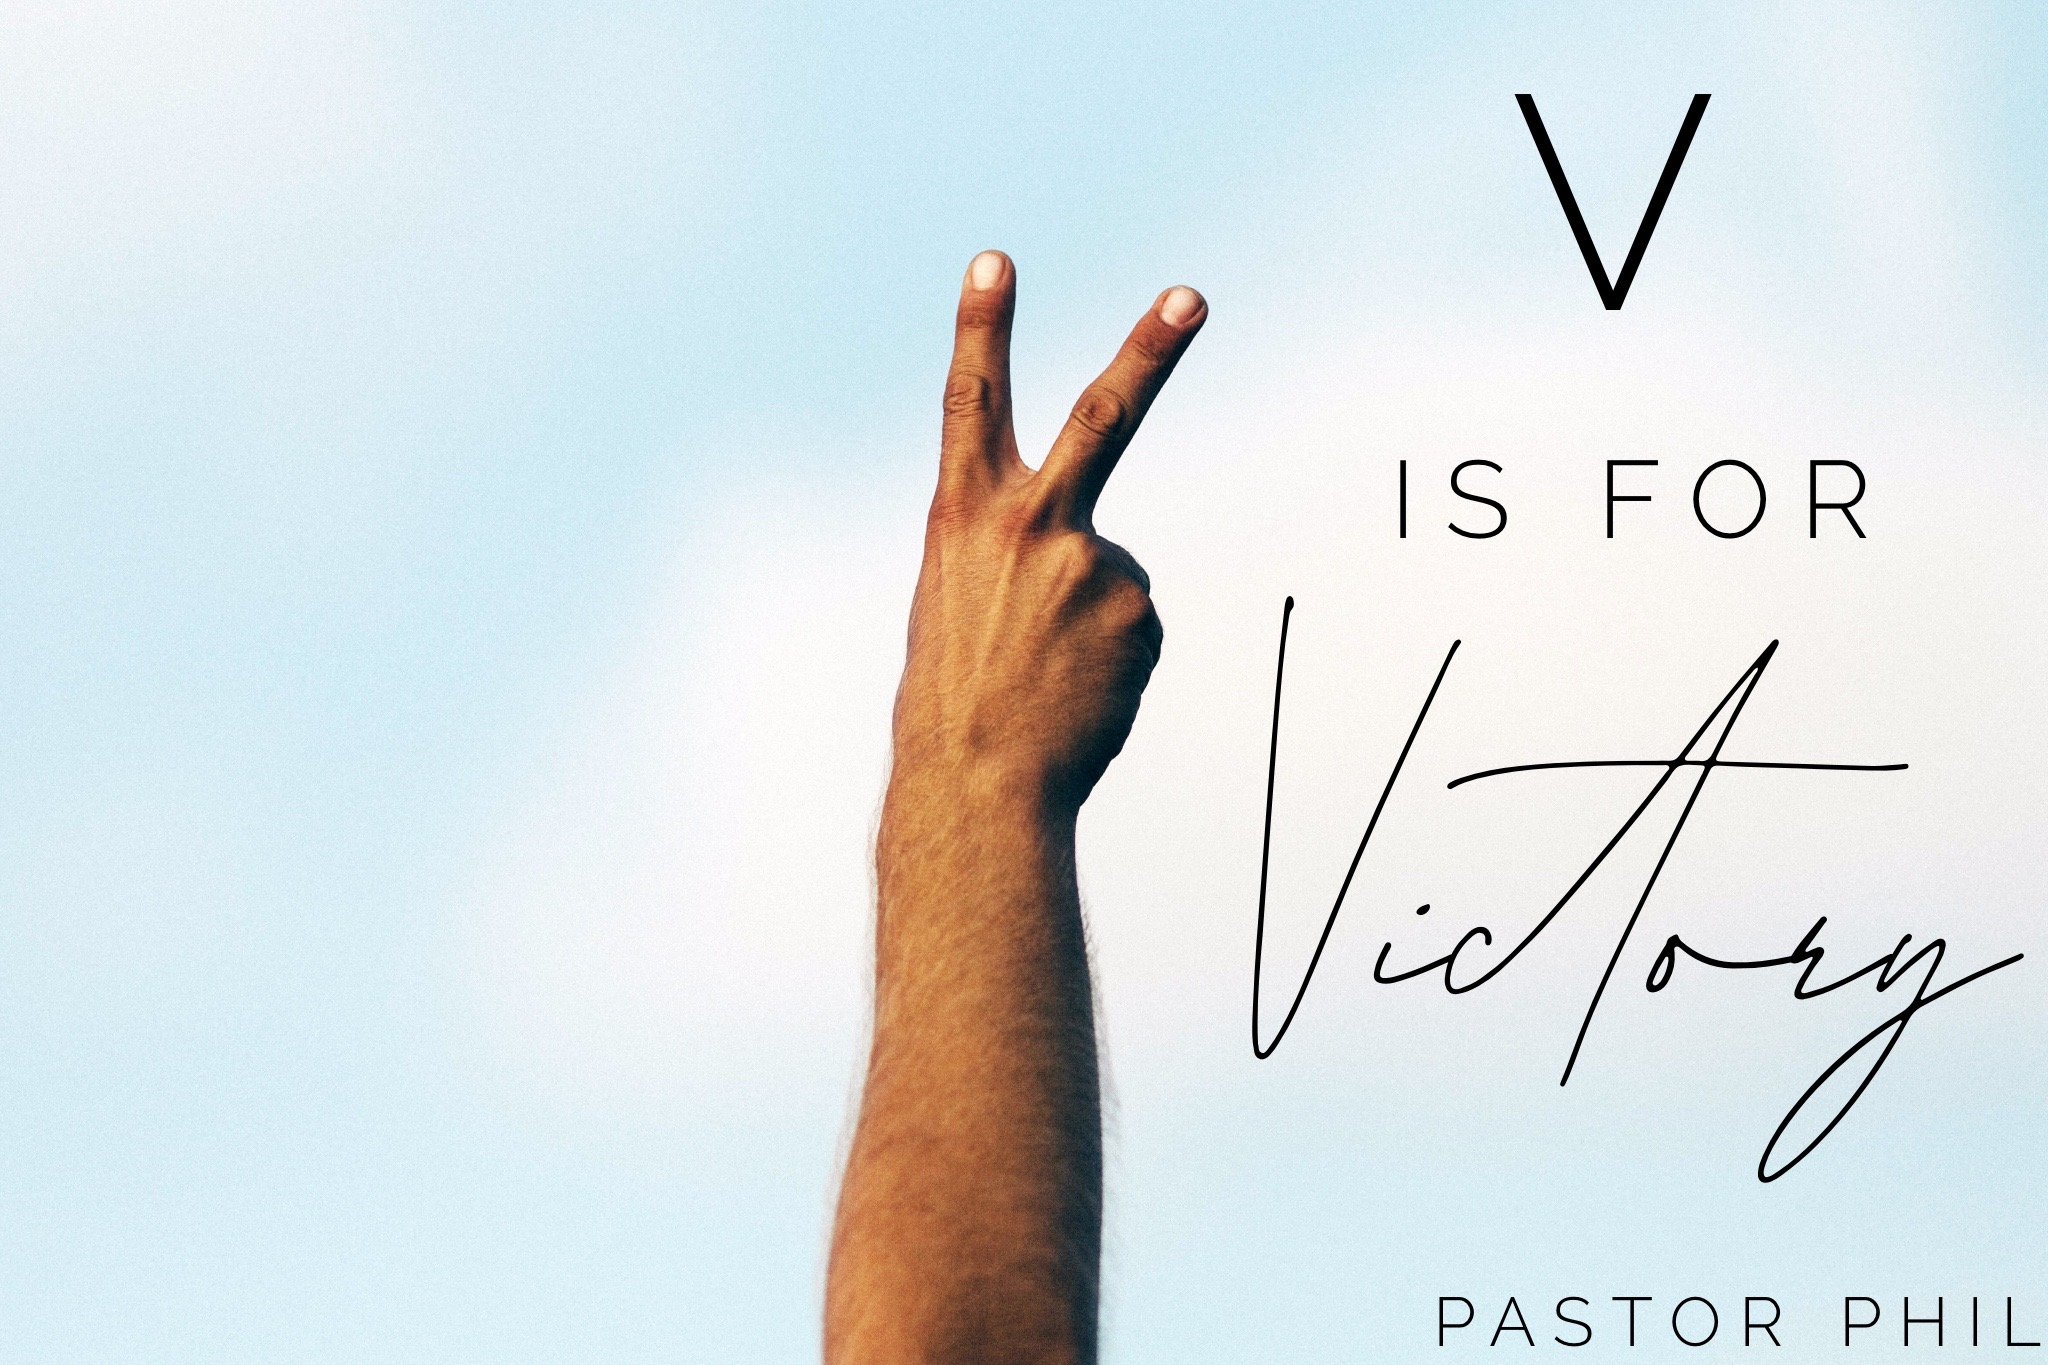 V is for Victory